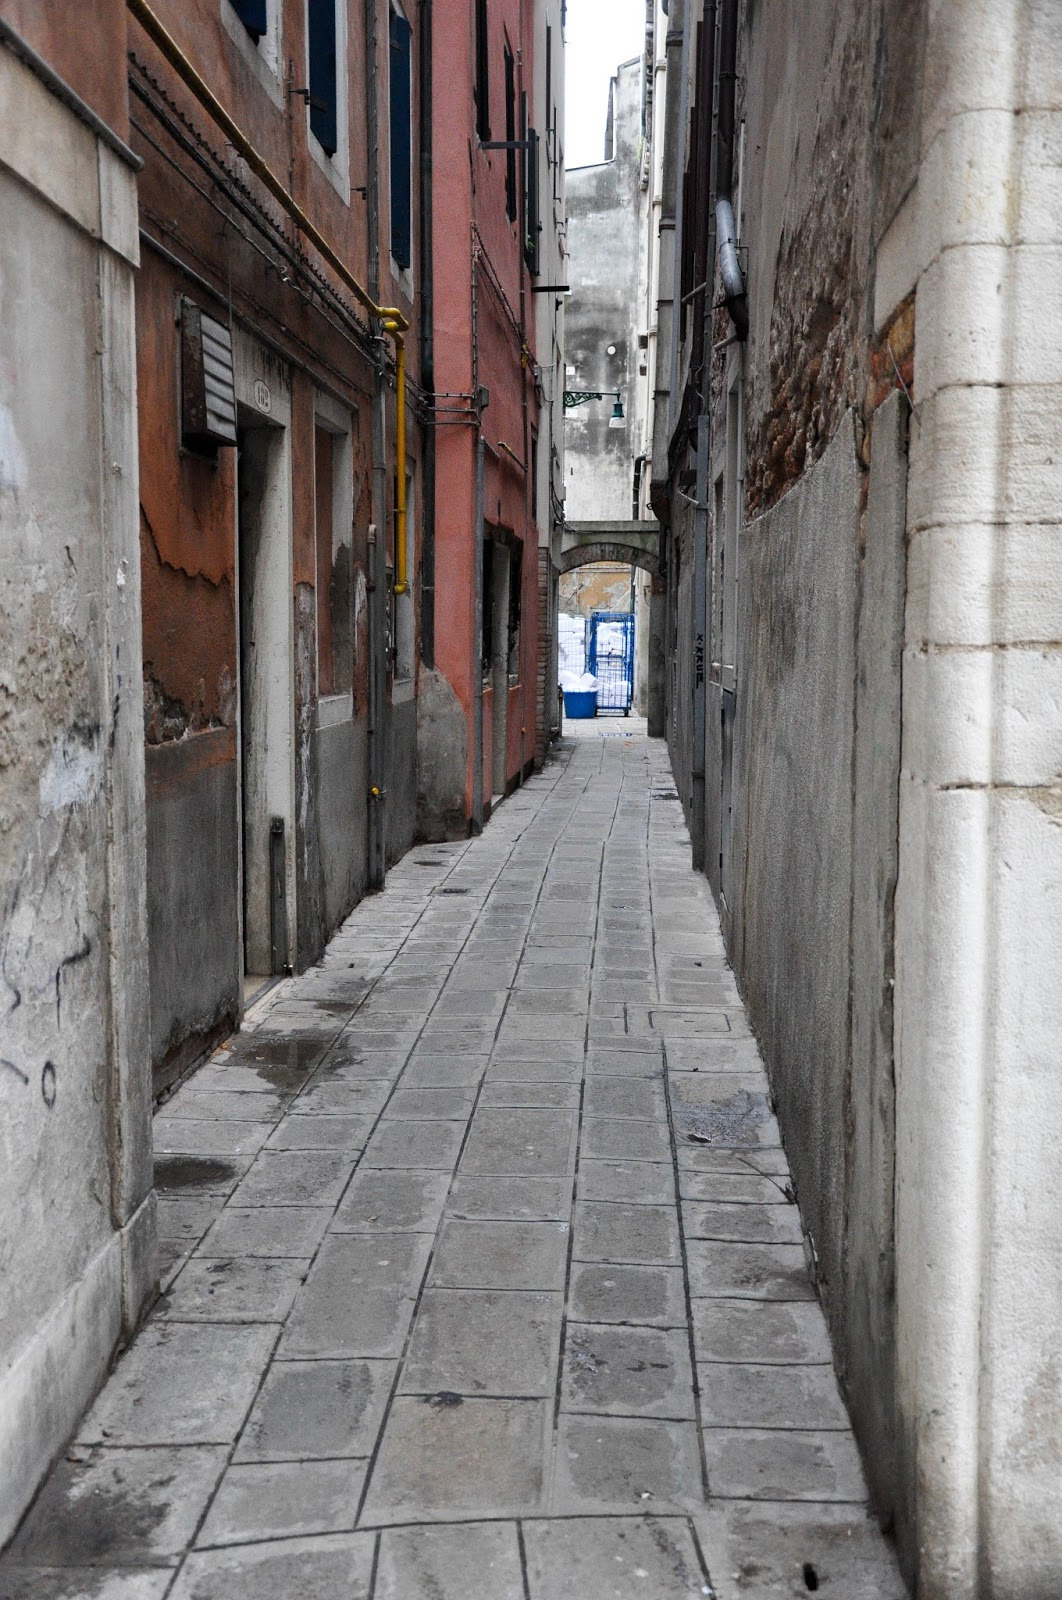 Empty side street with piles of freshly washed sheets at the far end, Venice, Italy